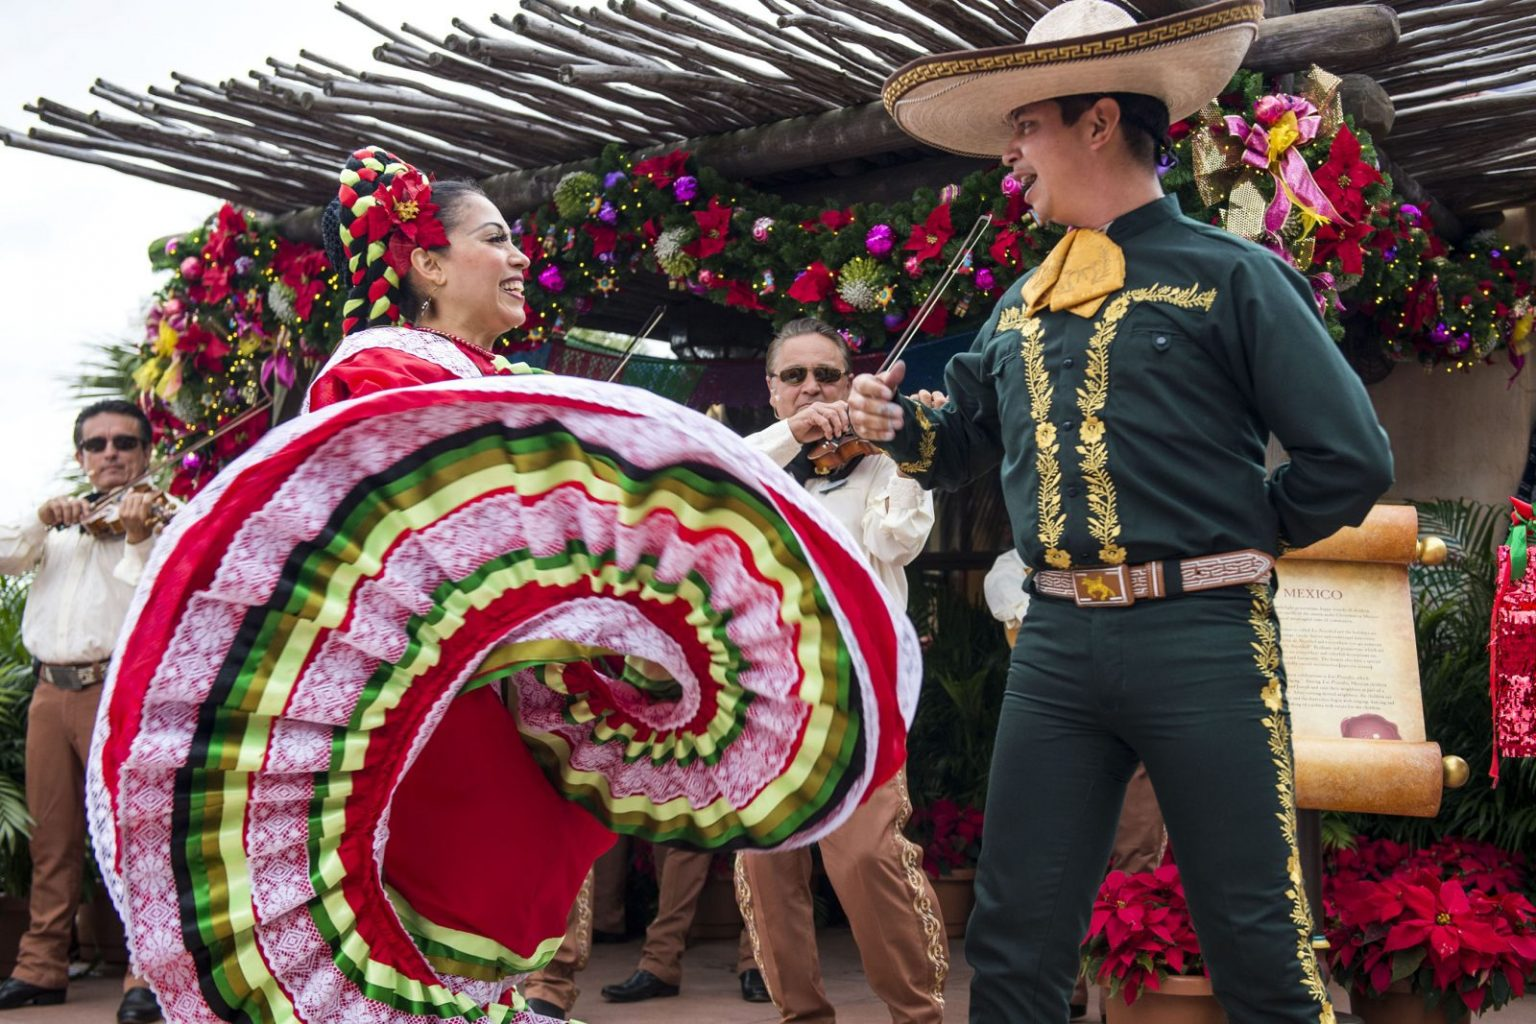 Storytellers and dancers in Mexico at Epcot during Christmas